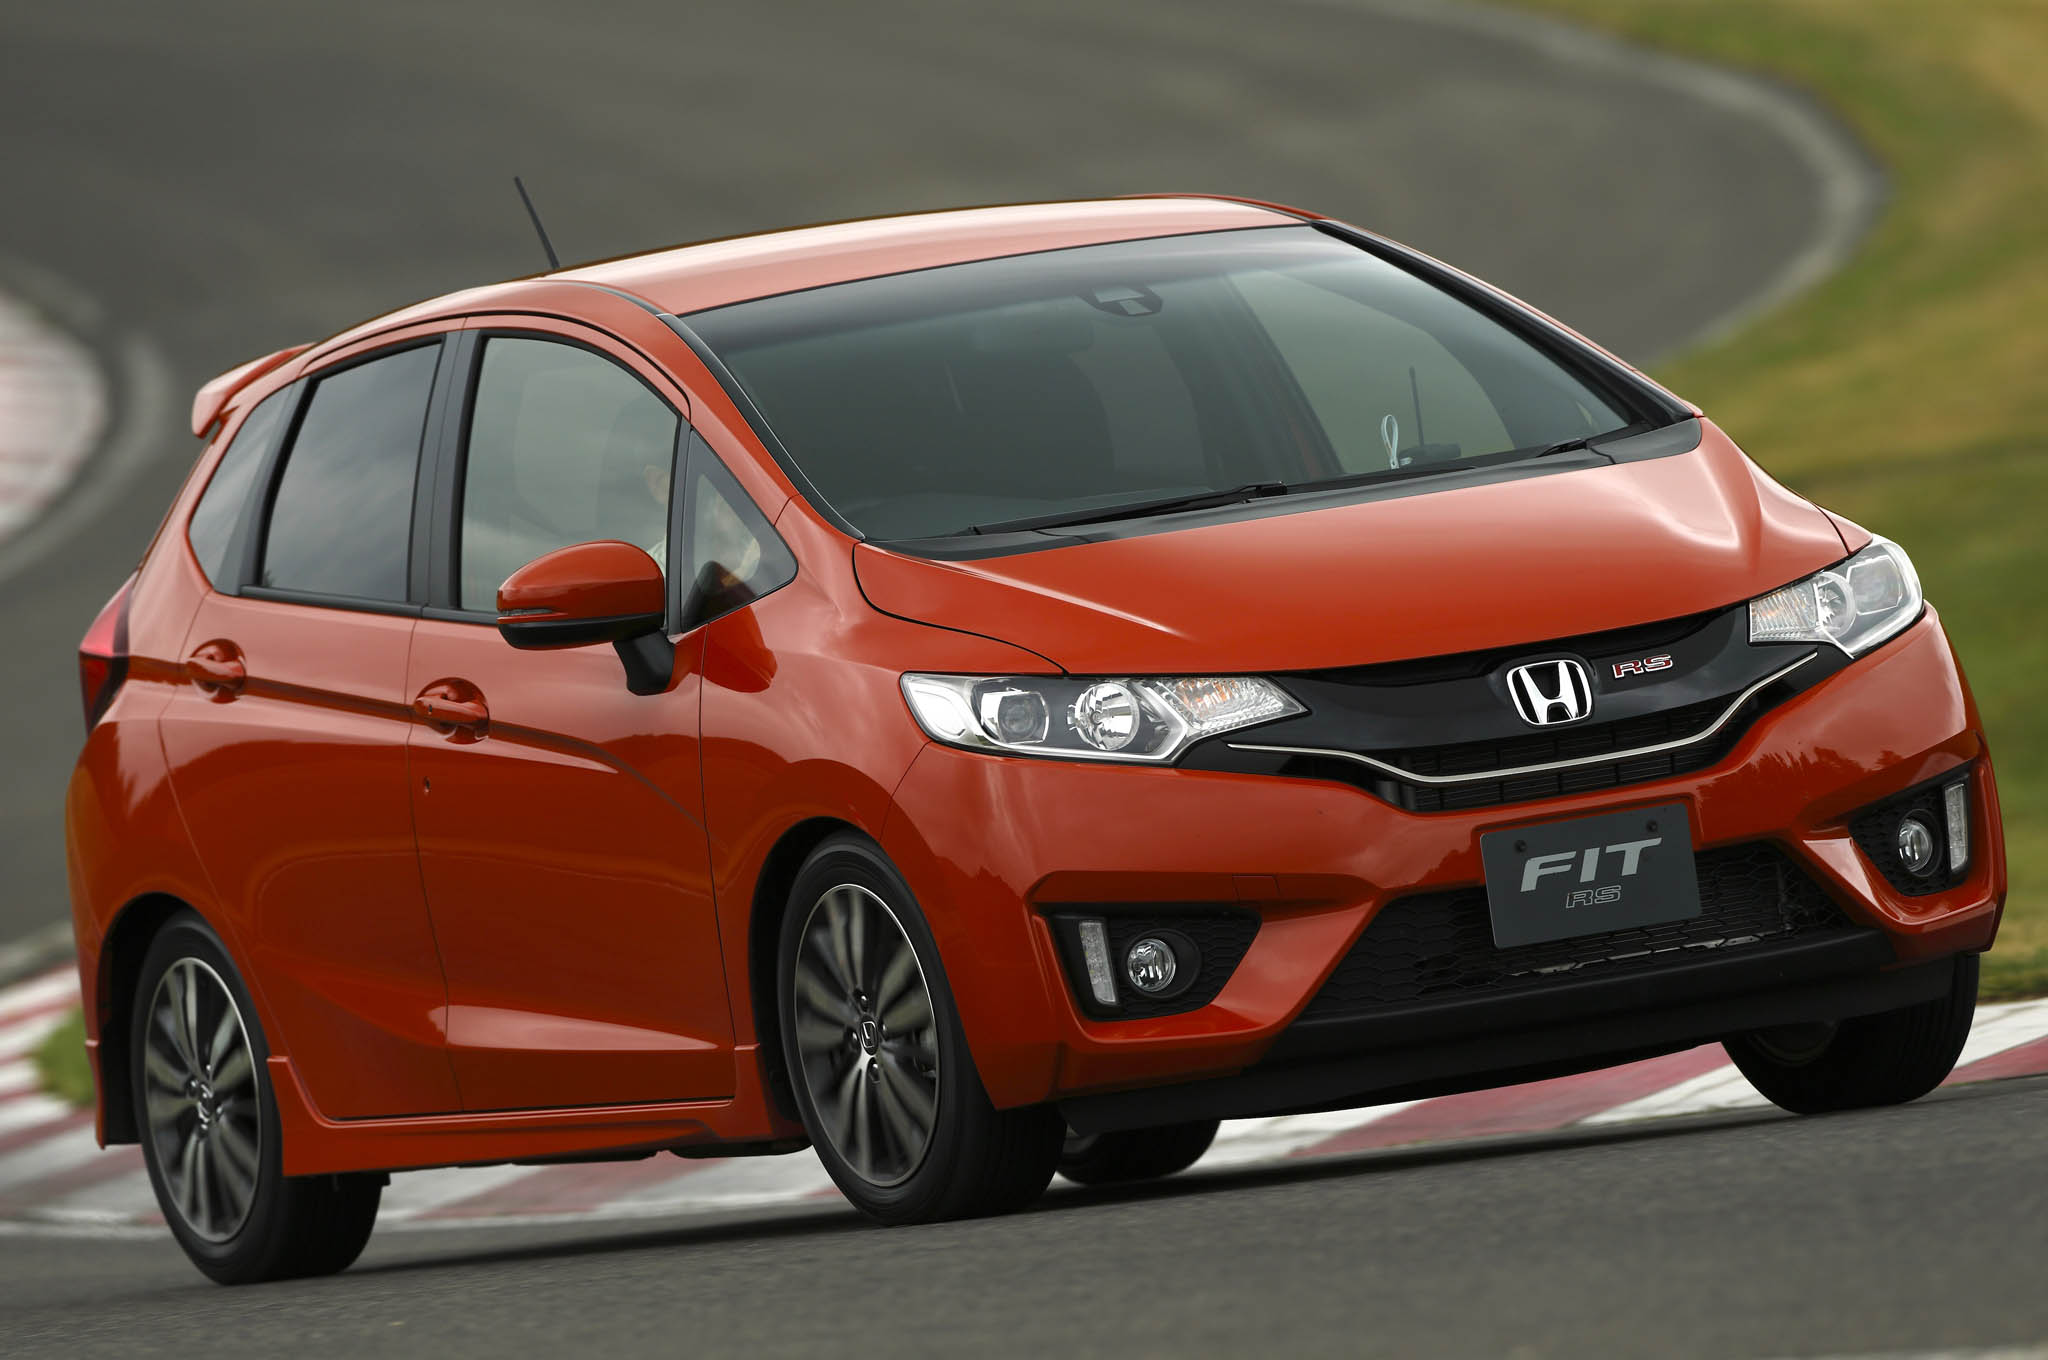 Honda Fit earns both the 5 Stars rating of NHTSA and Top Safety Pick of IIHS